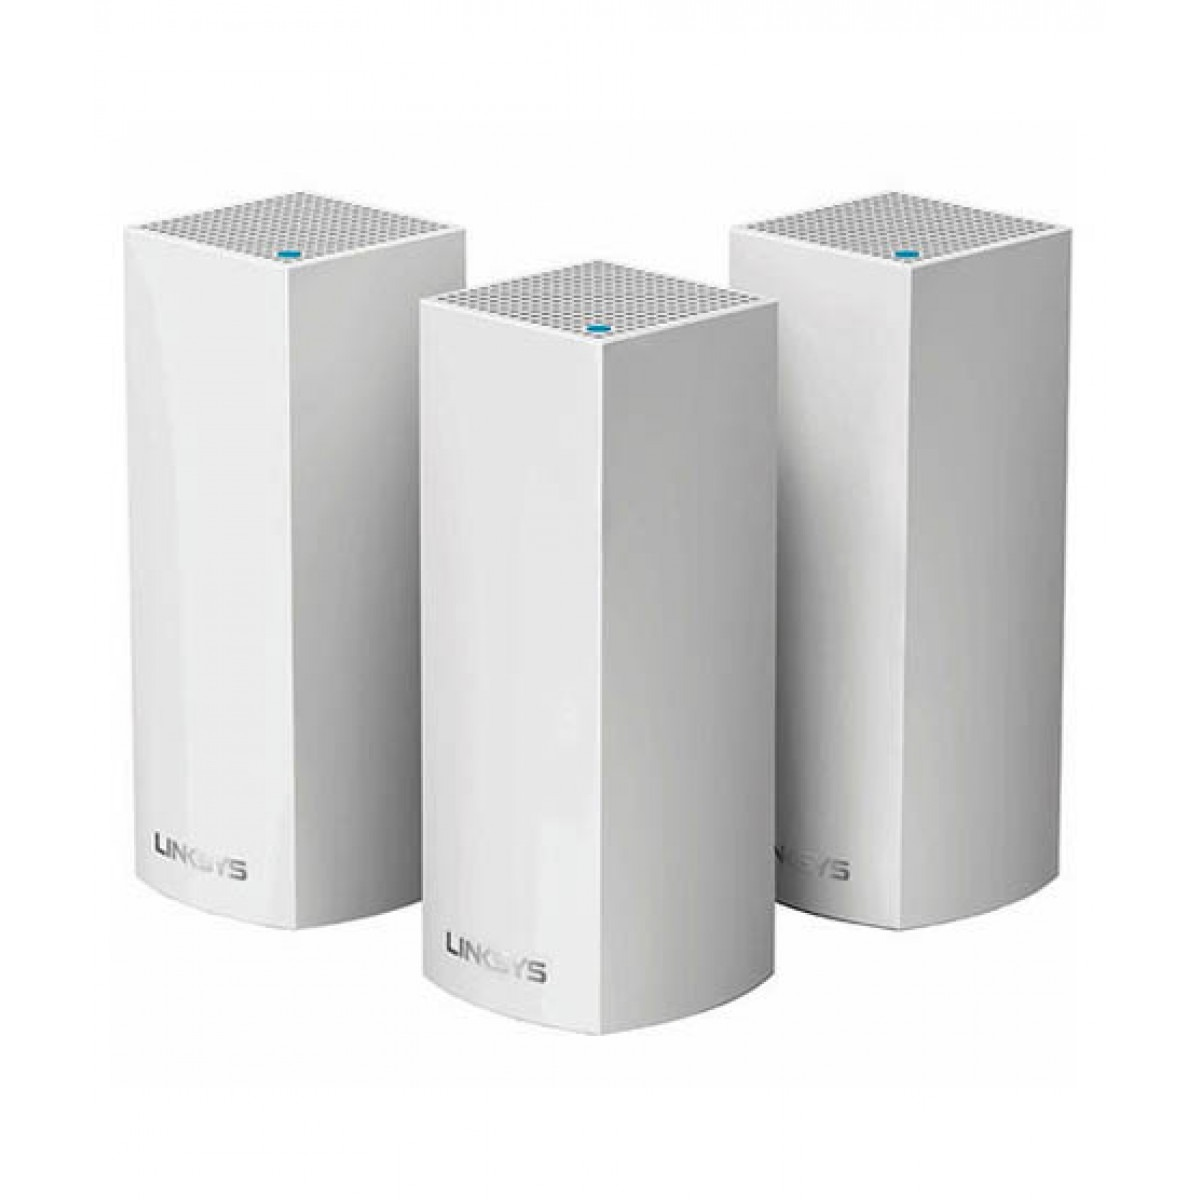 Linksys Velop: Home mesh, take two – QueryBang